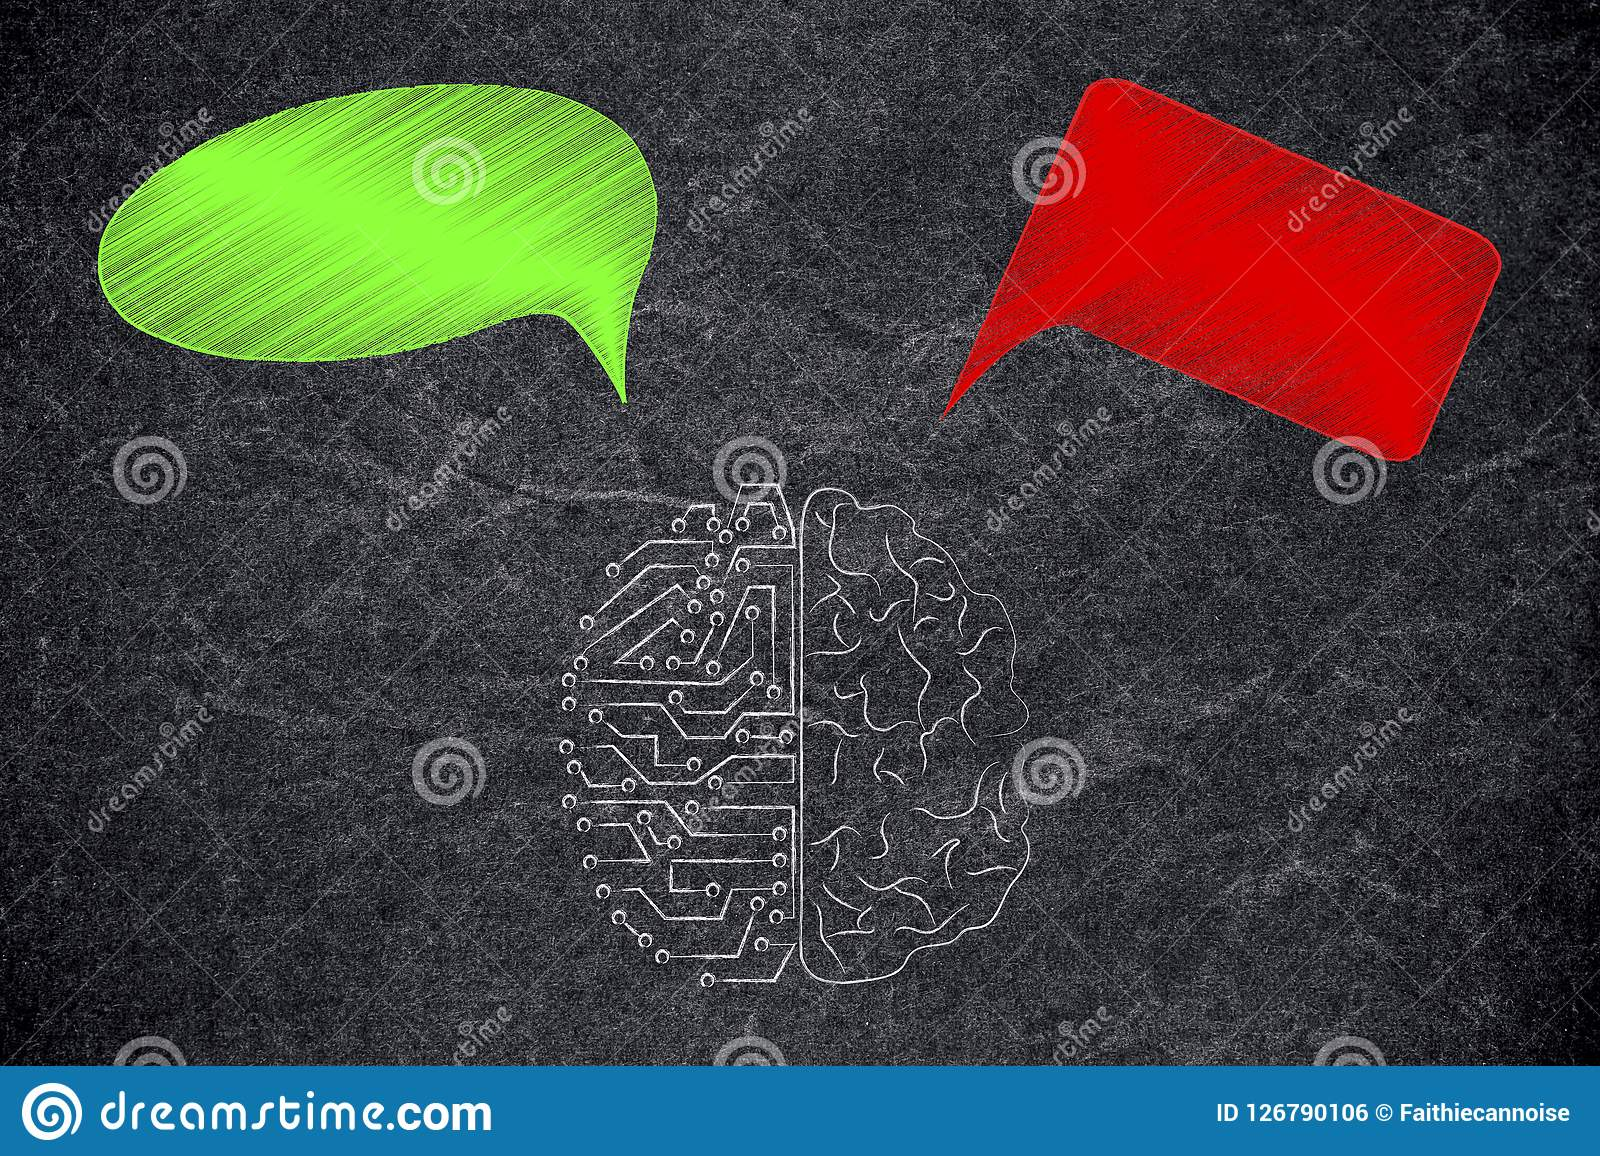 half human half circuit brain with green and red thoughts representing good and bad feelings or ideas